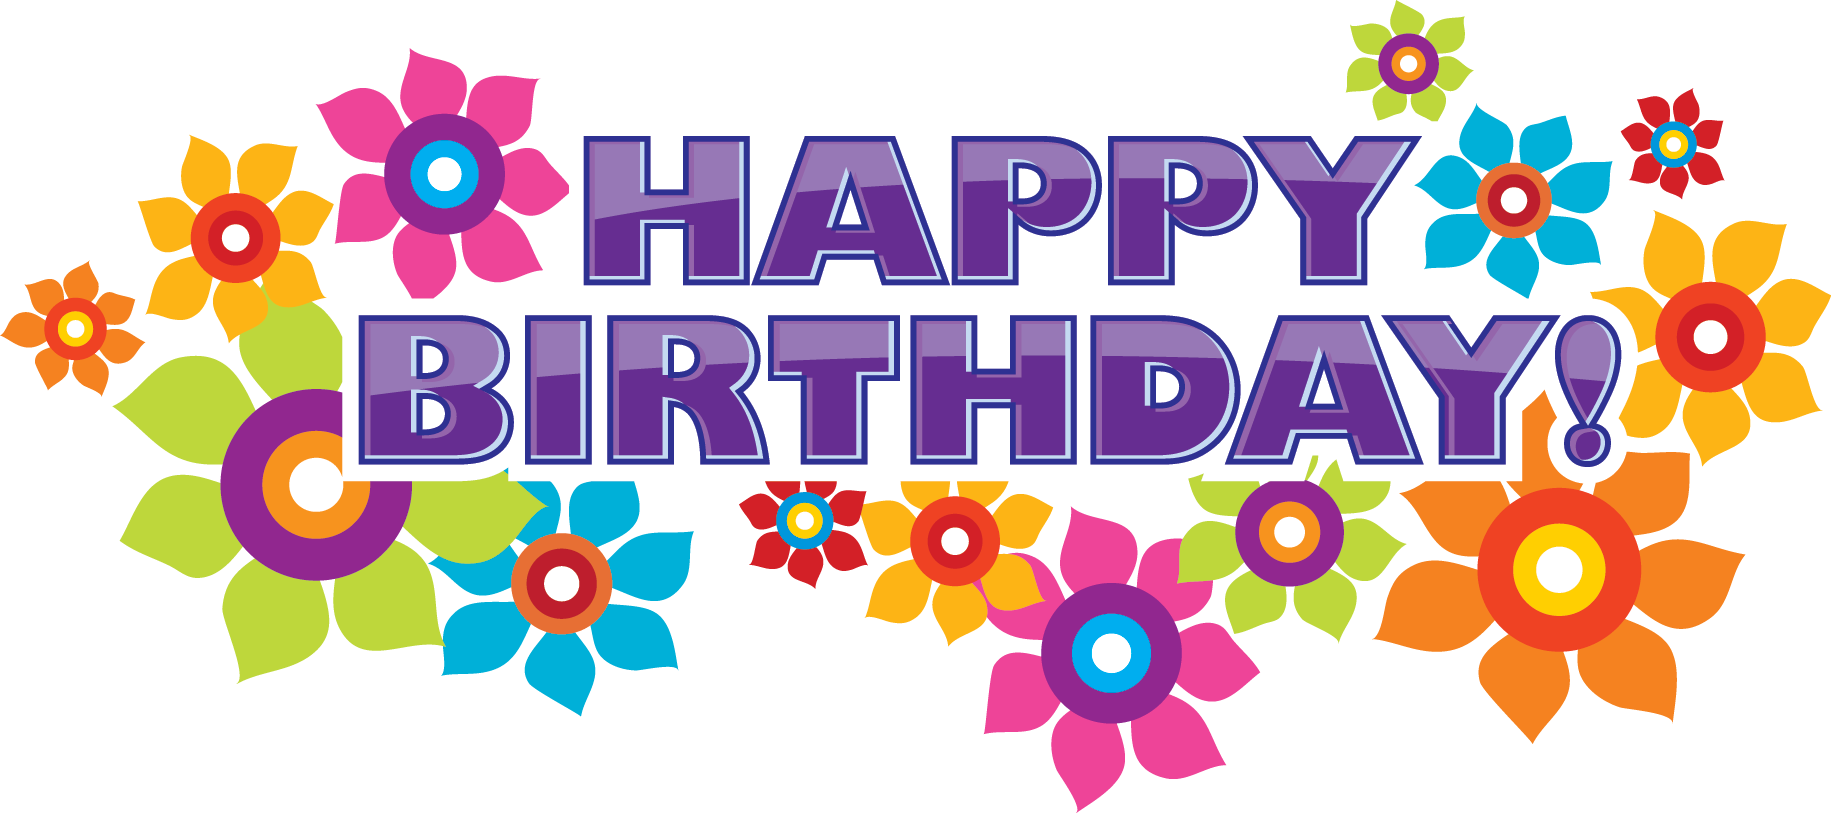 Png . Words clipart happy birthday